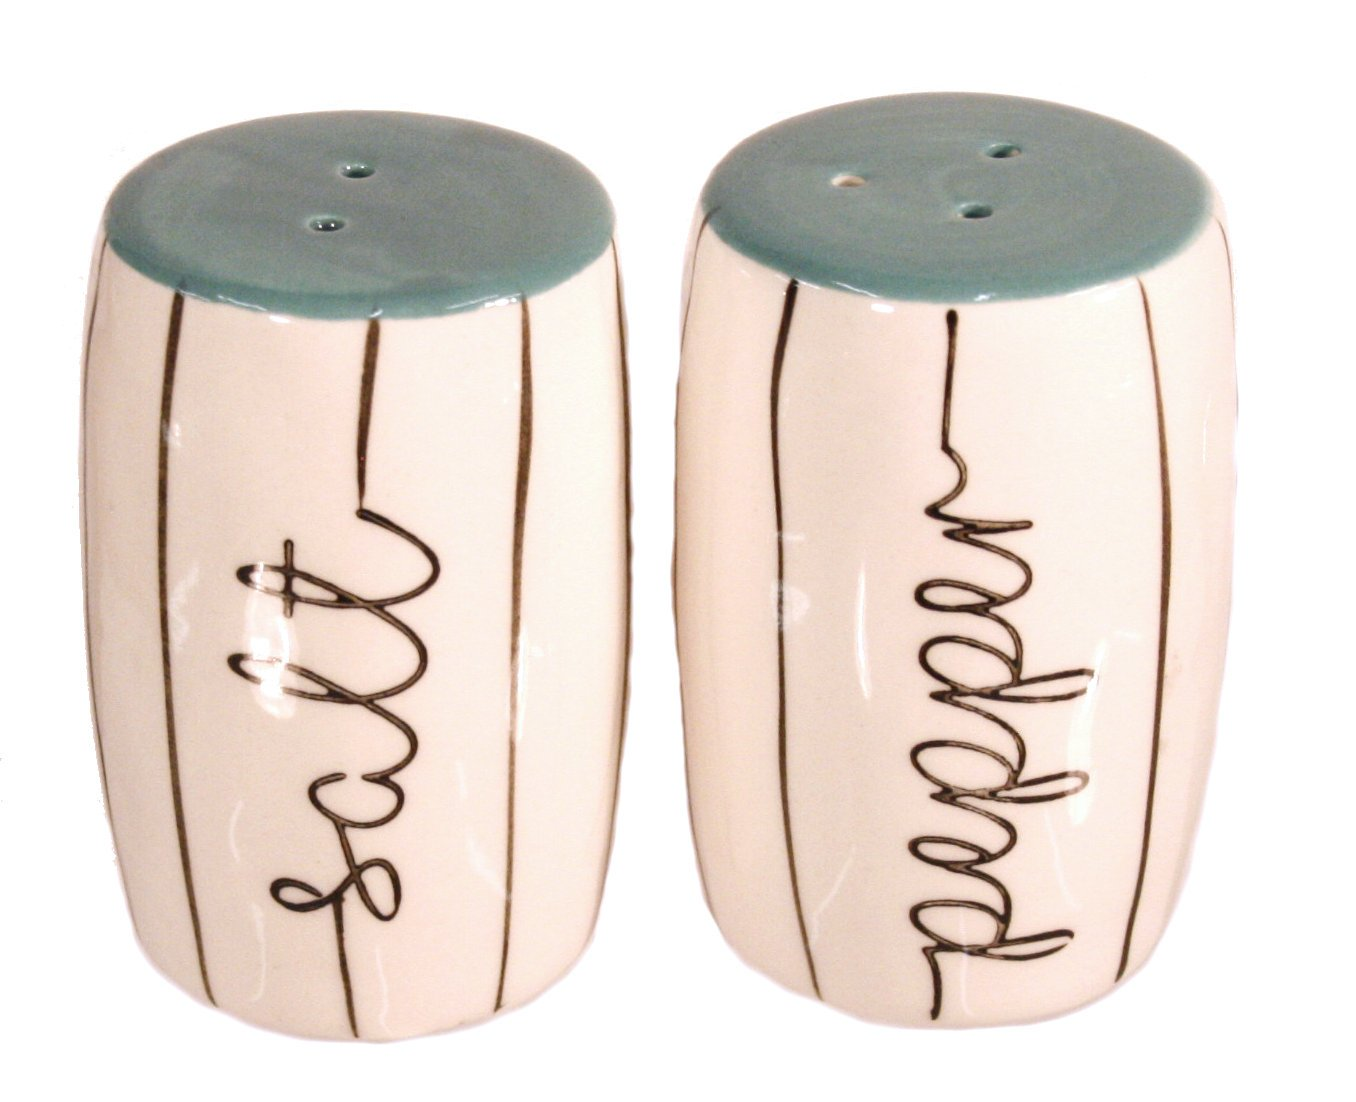 Cute Salt and Pepper Shakers with Coordinating Refrigerator Magnet Black White Turquoise